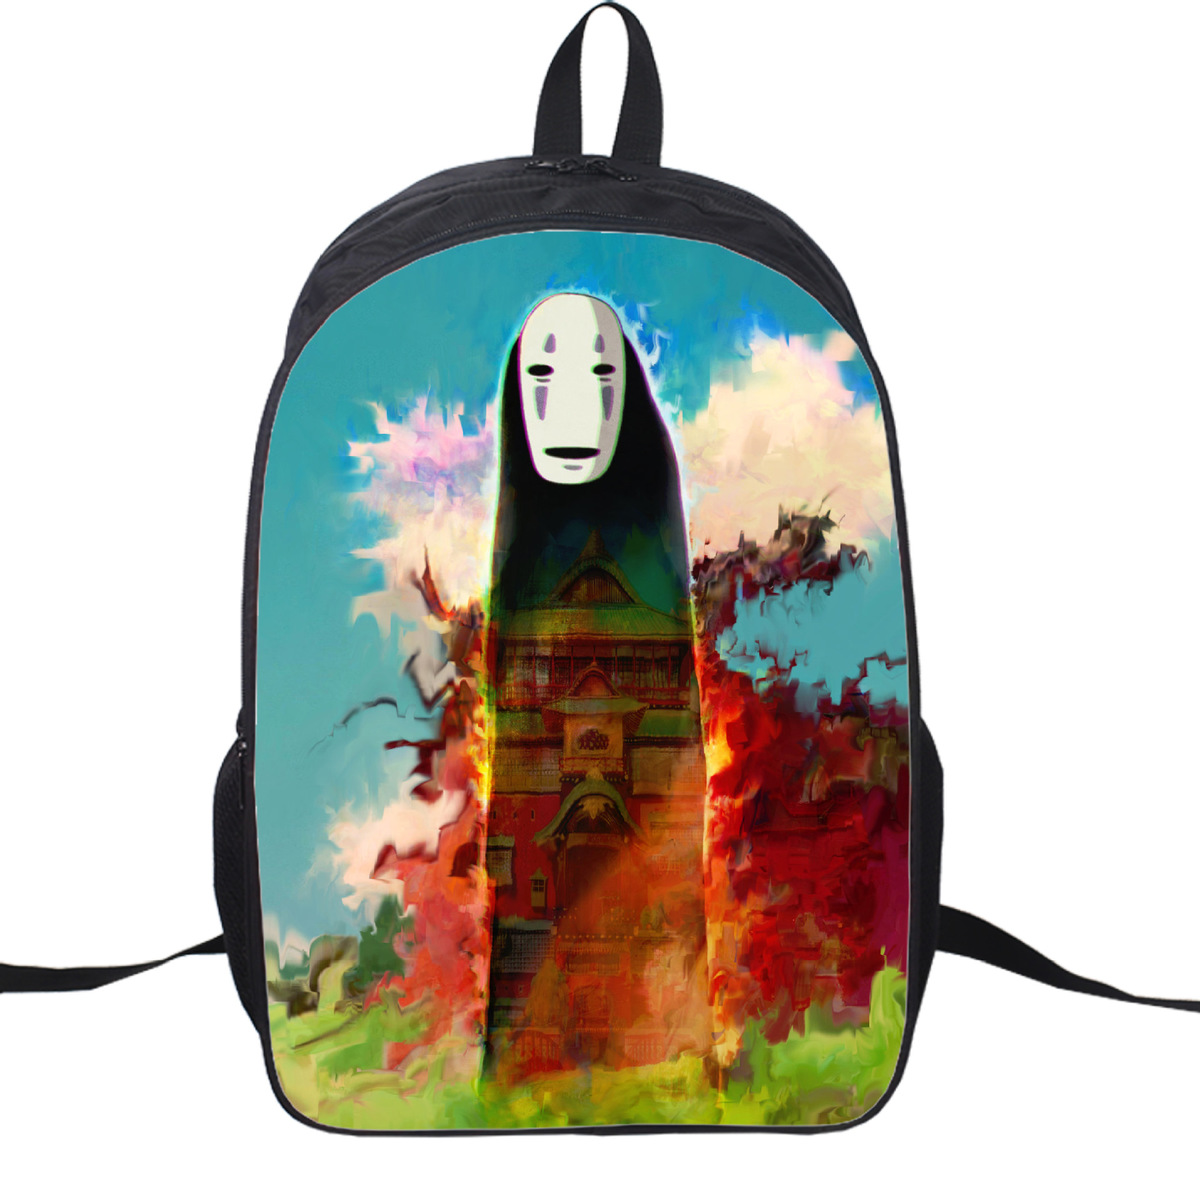 spirited backpack 8 styles